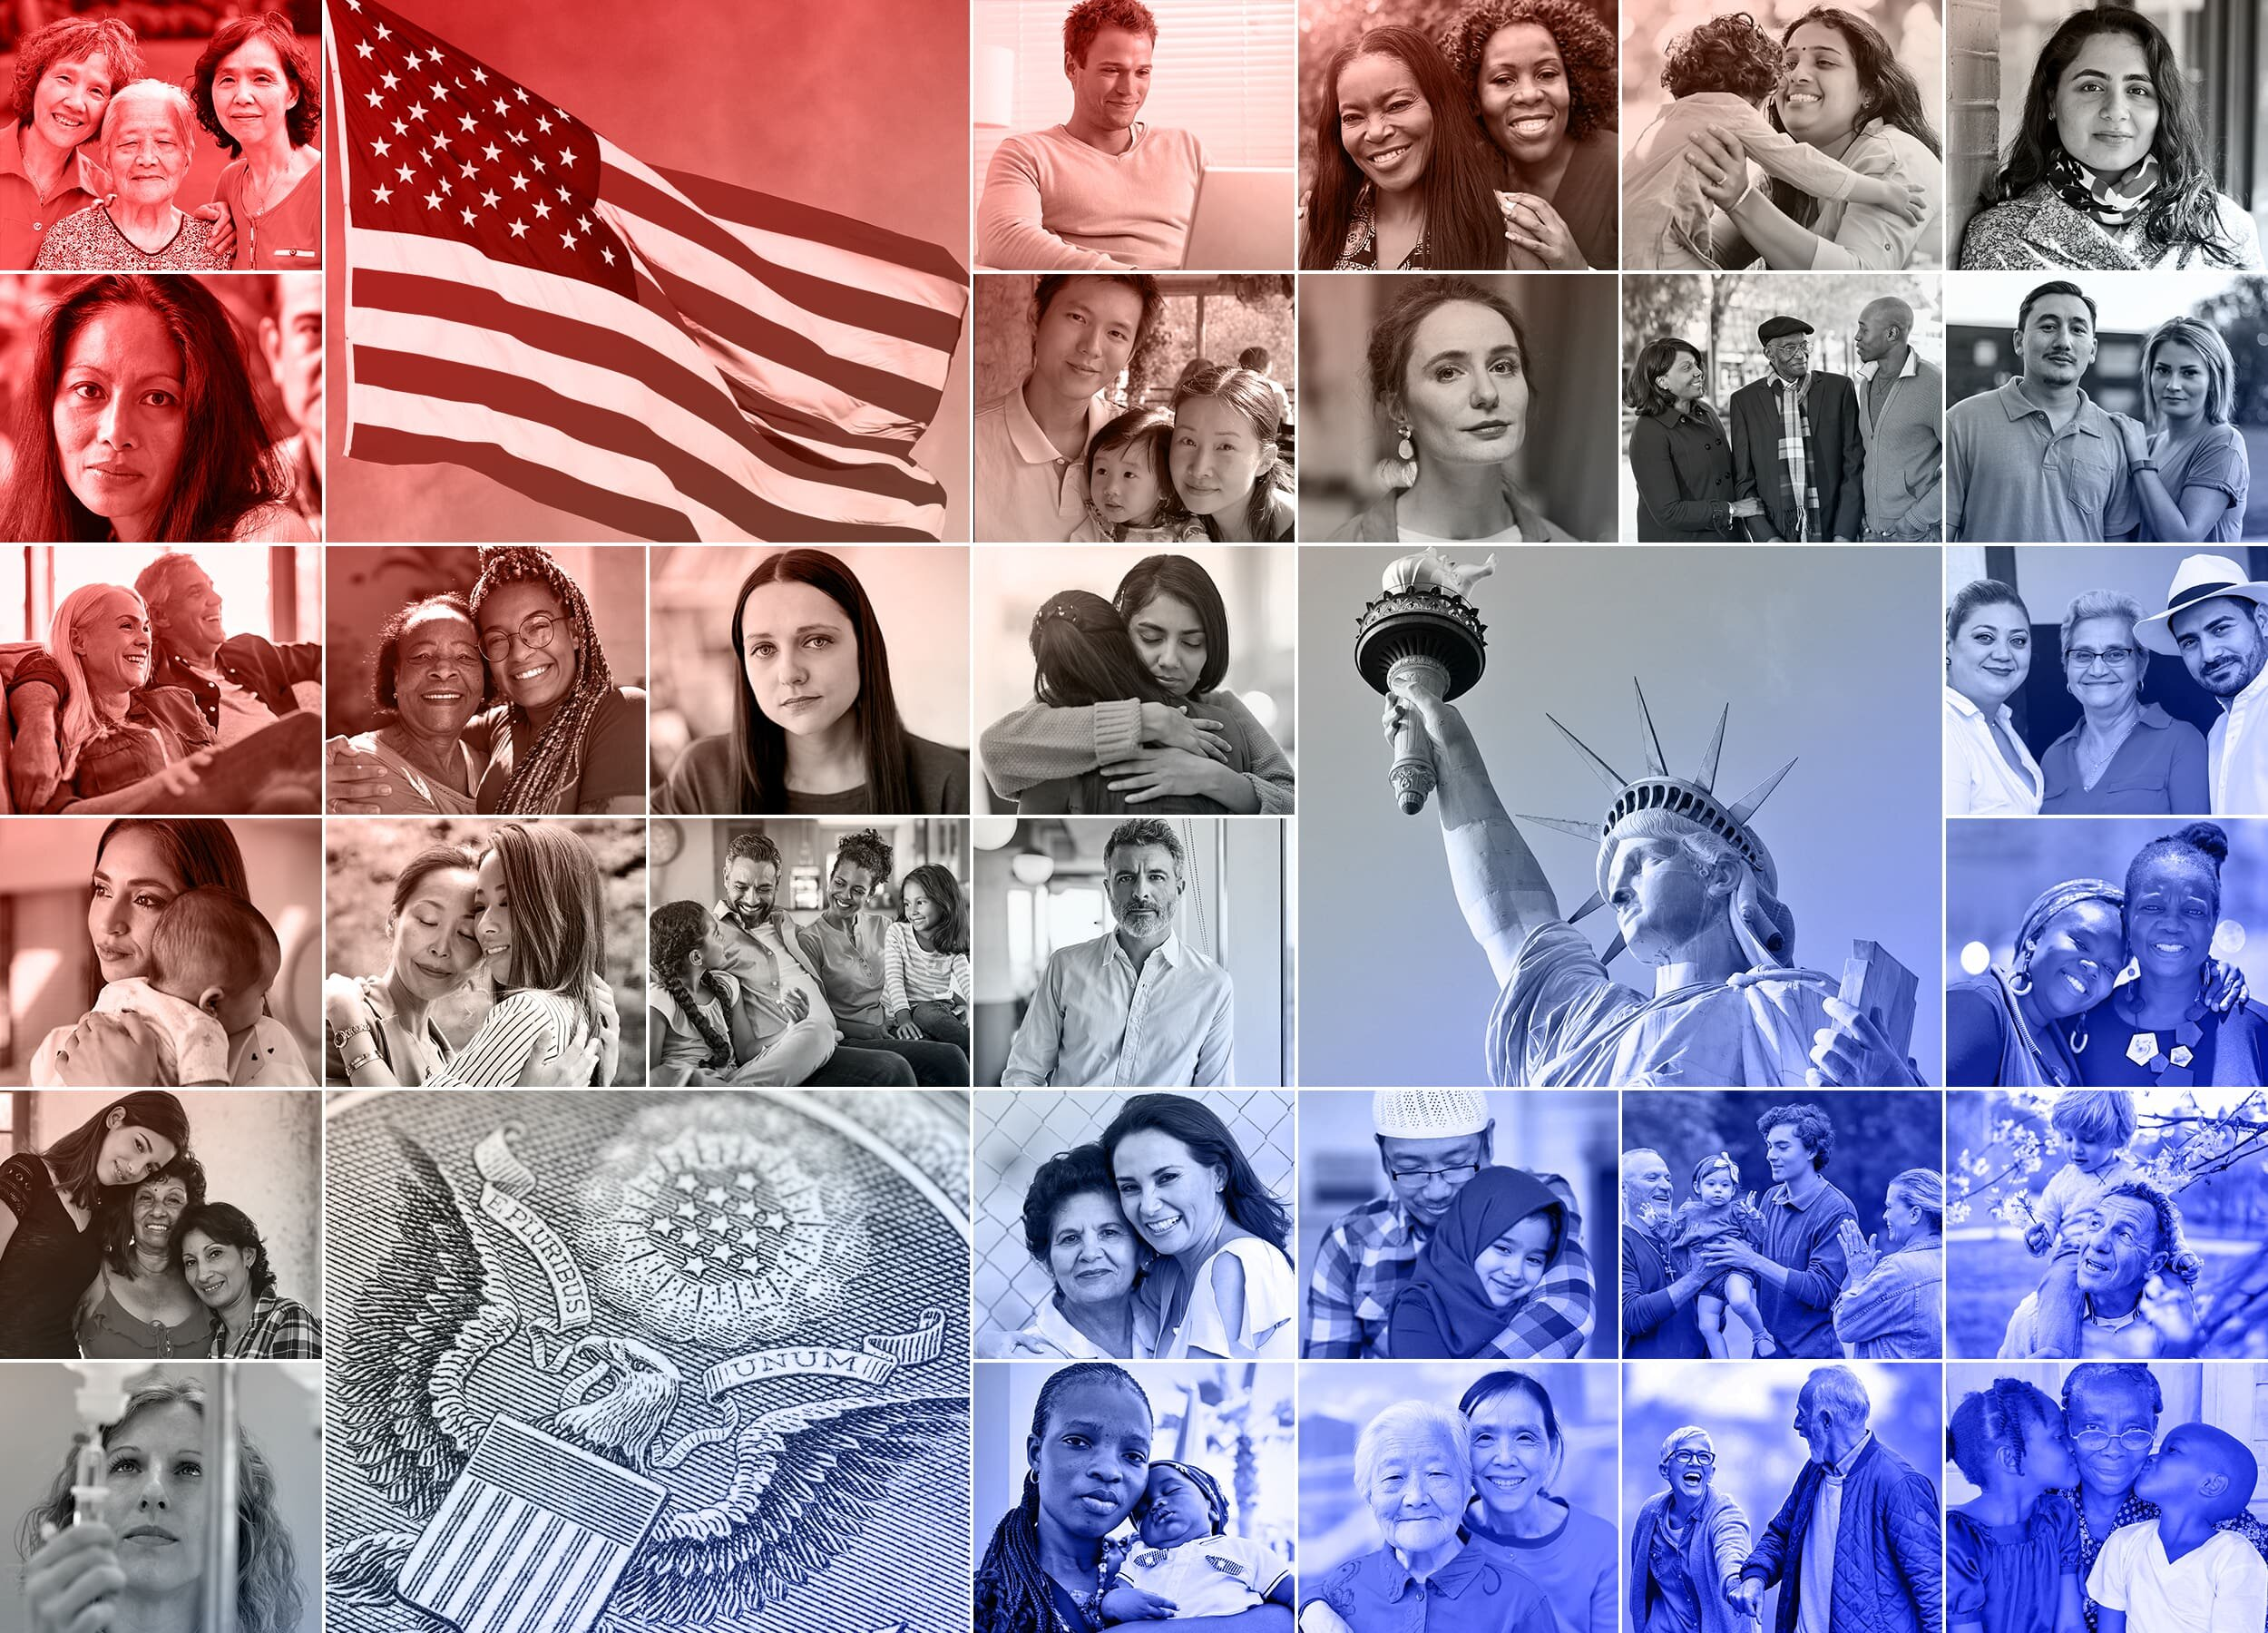 www.cato.org: E Pluribus Unum: Findings from the Cato Institute 2021 Immigration and Identity National Survey